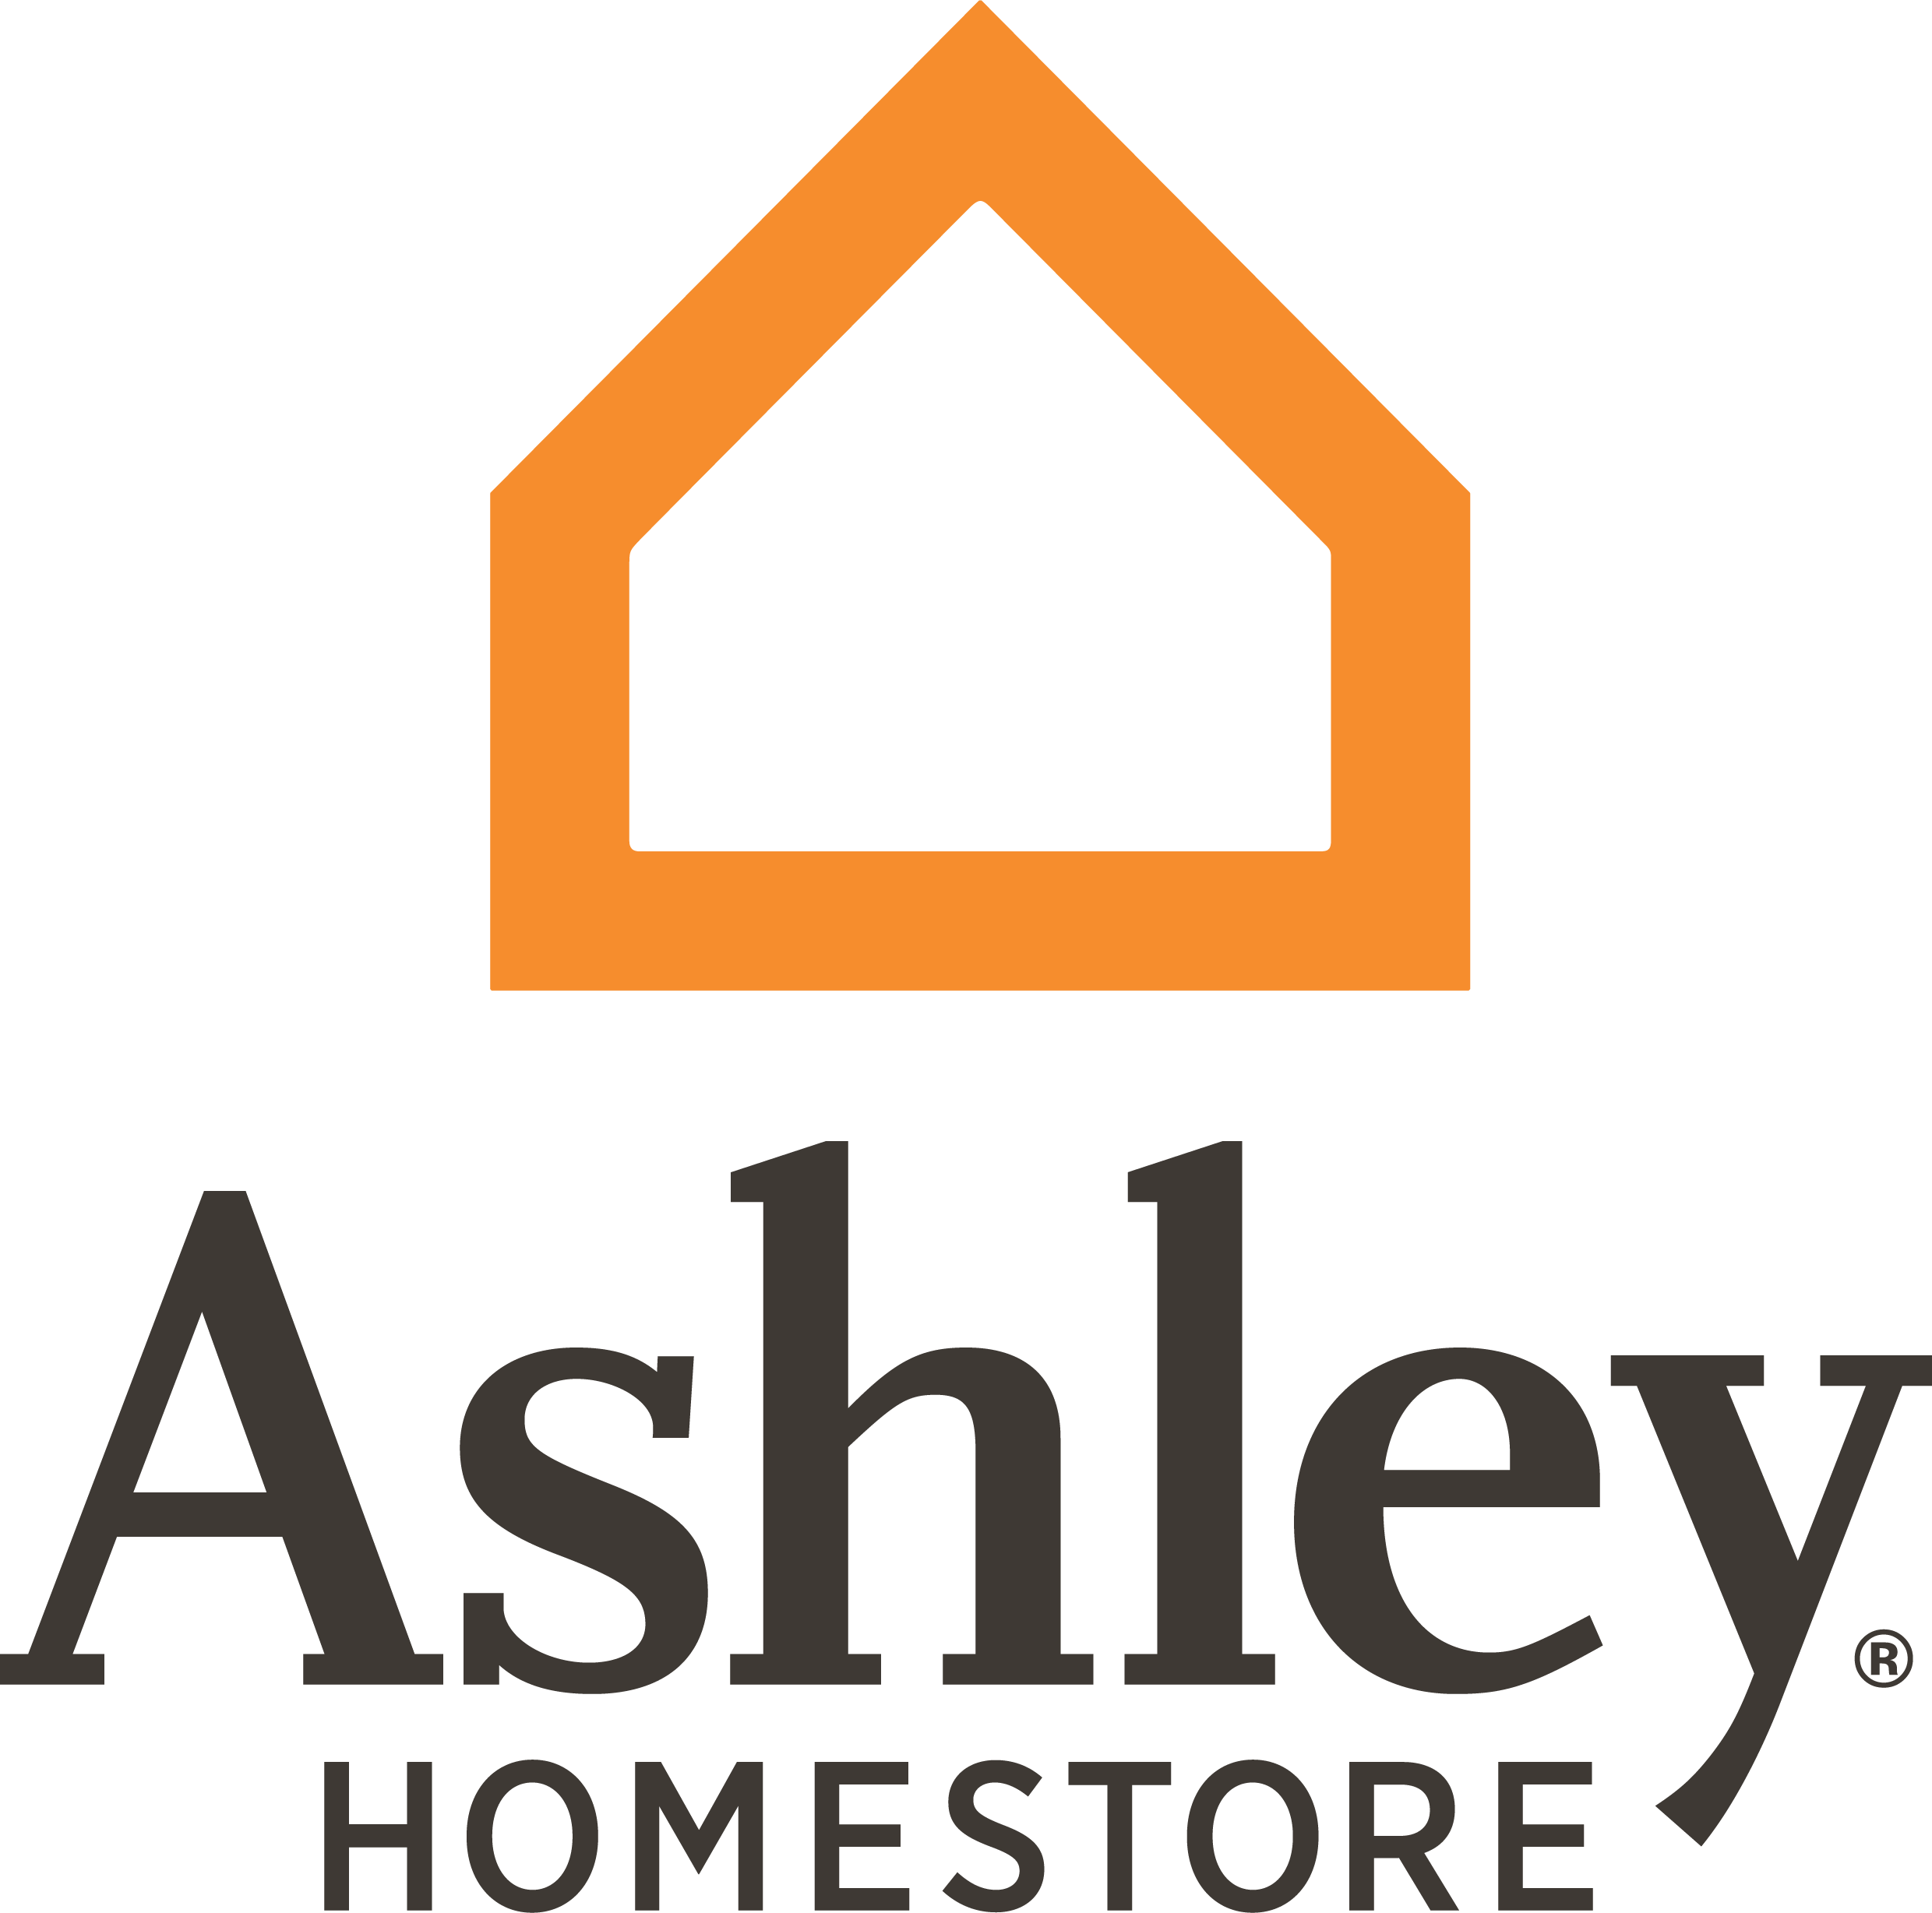 Ashleys Furniture Home Store: Salvation Army Angels 'Fly' From Ashley HomeStore Angel